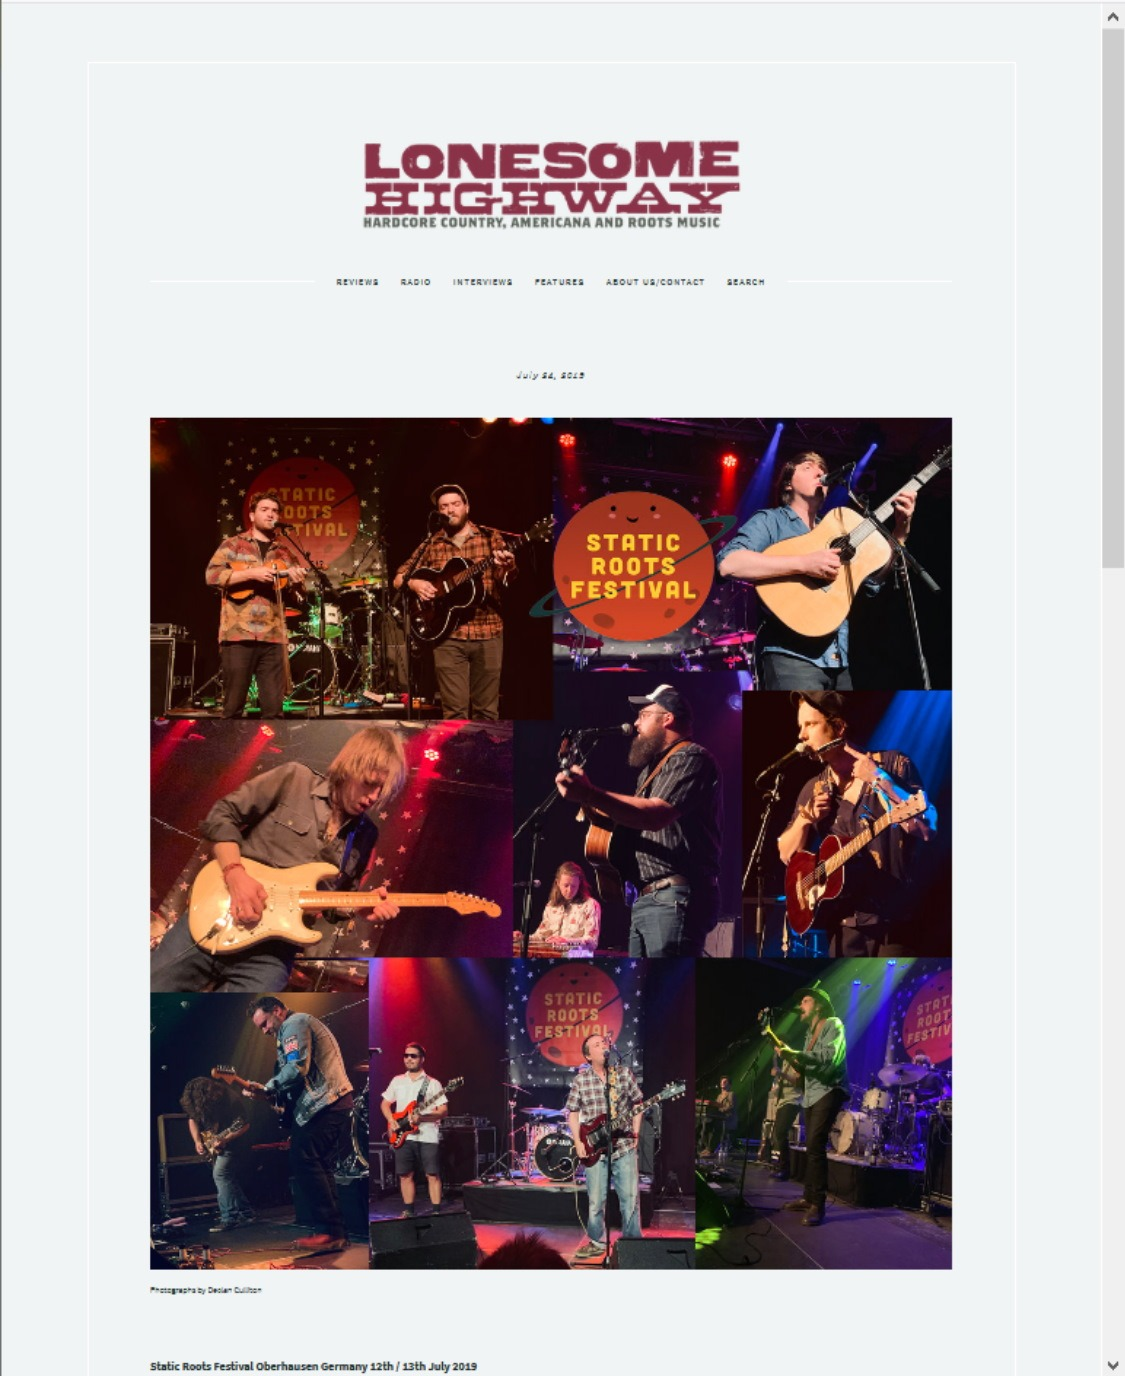 lonesomehighway-com-another-successful-static-roots-festival